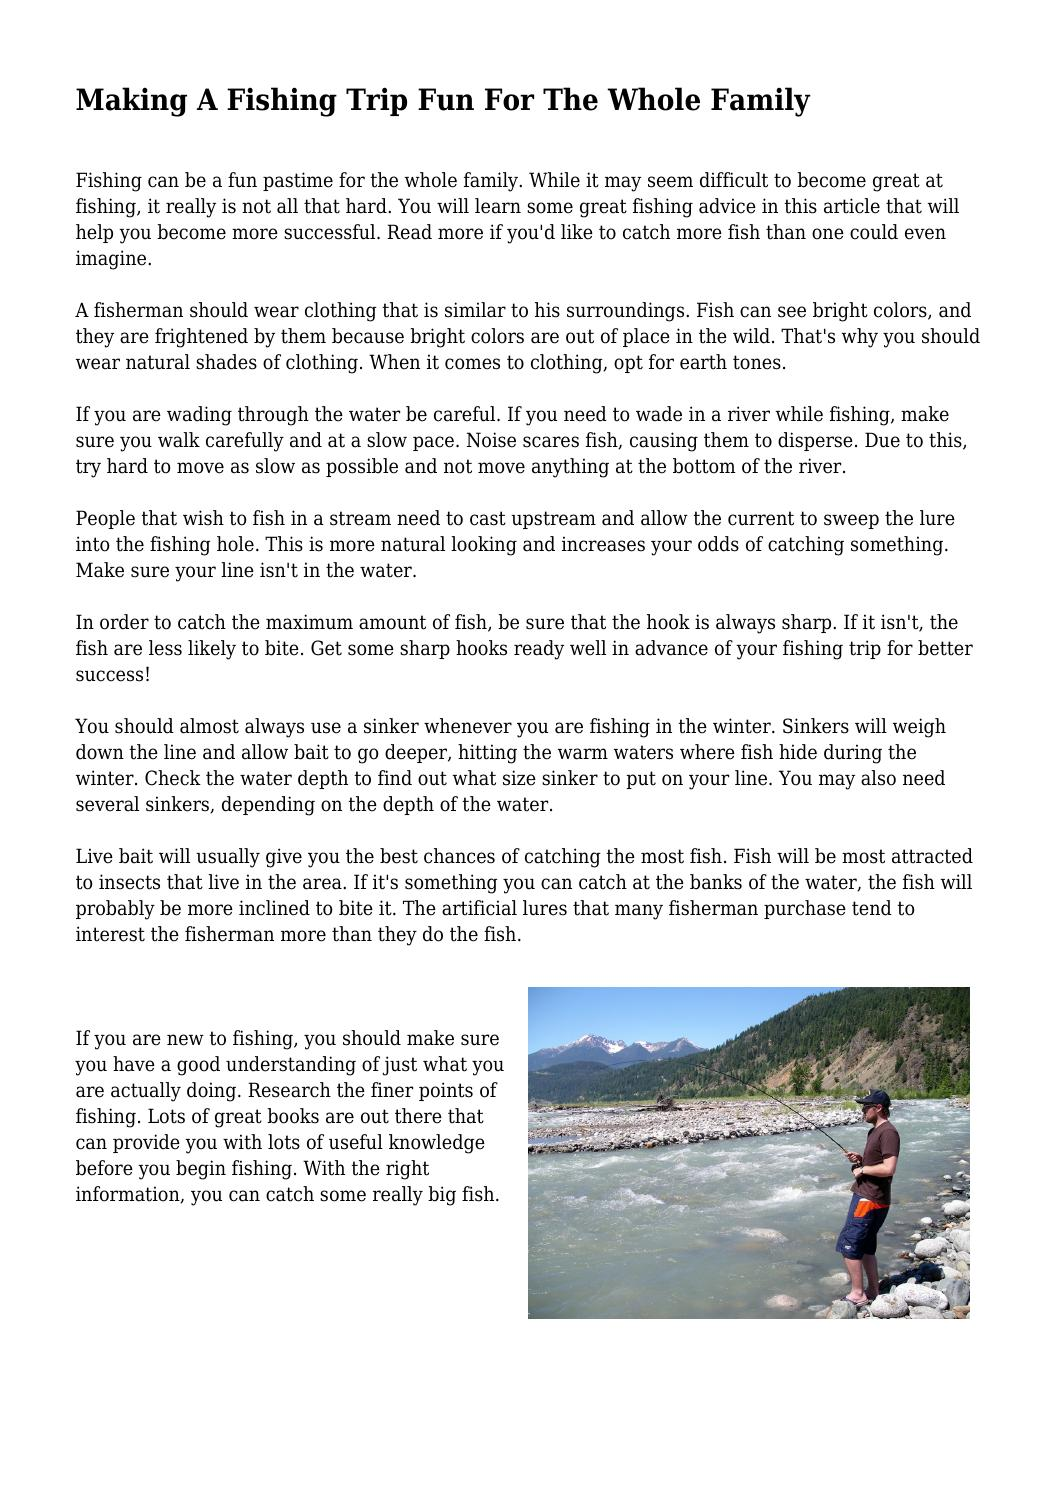 Making A Fishing Trip Fun For The Whole Family By Detailedunderwo18 Issuu